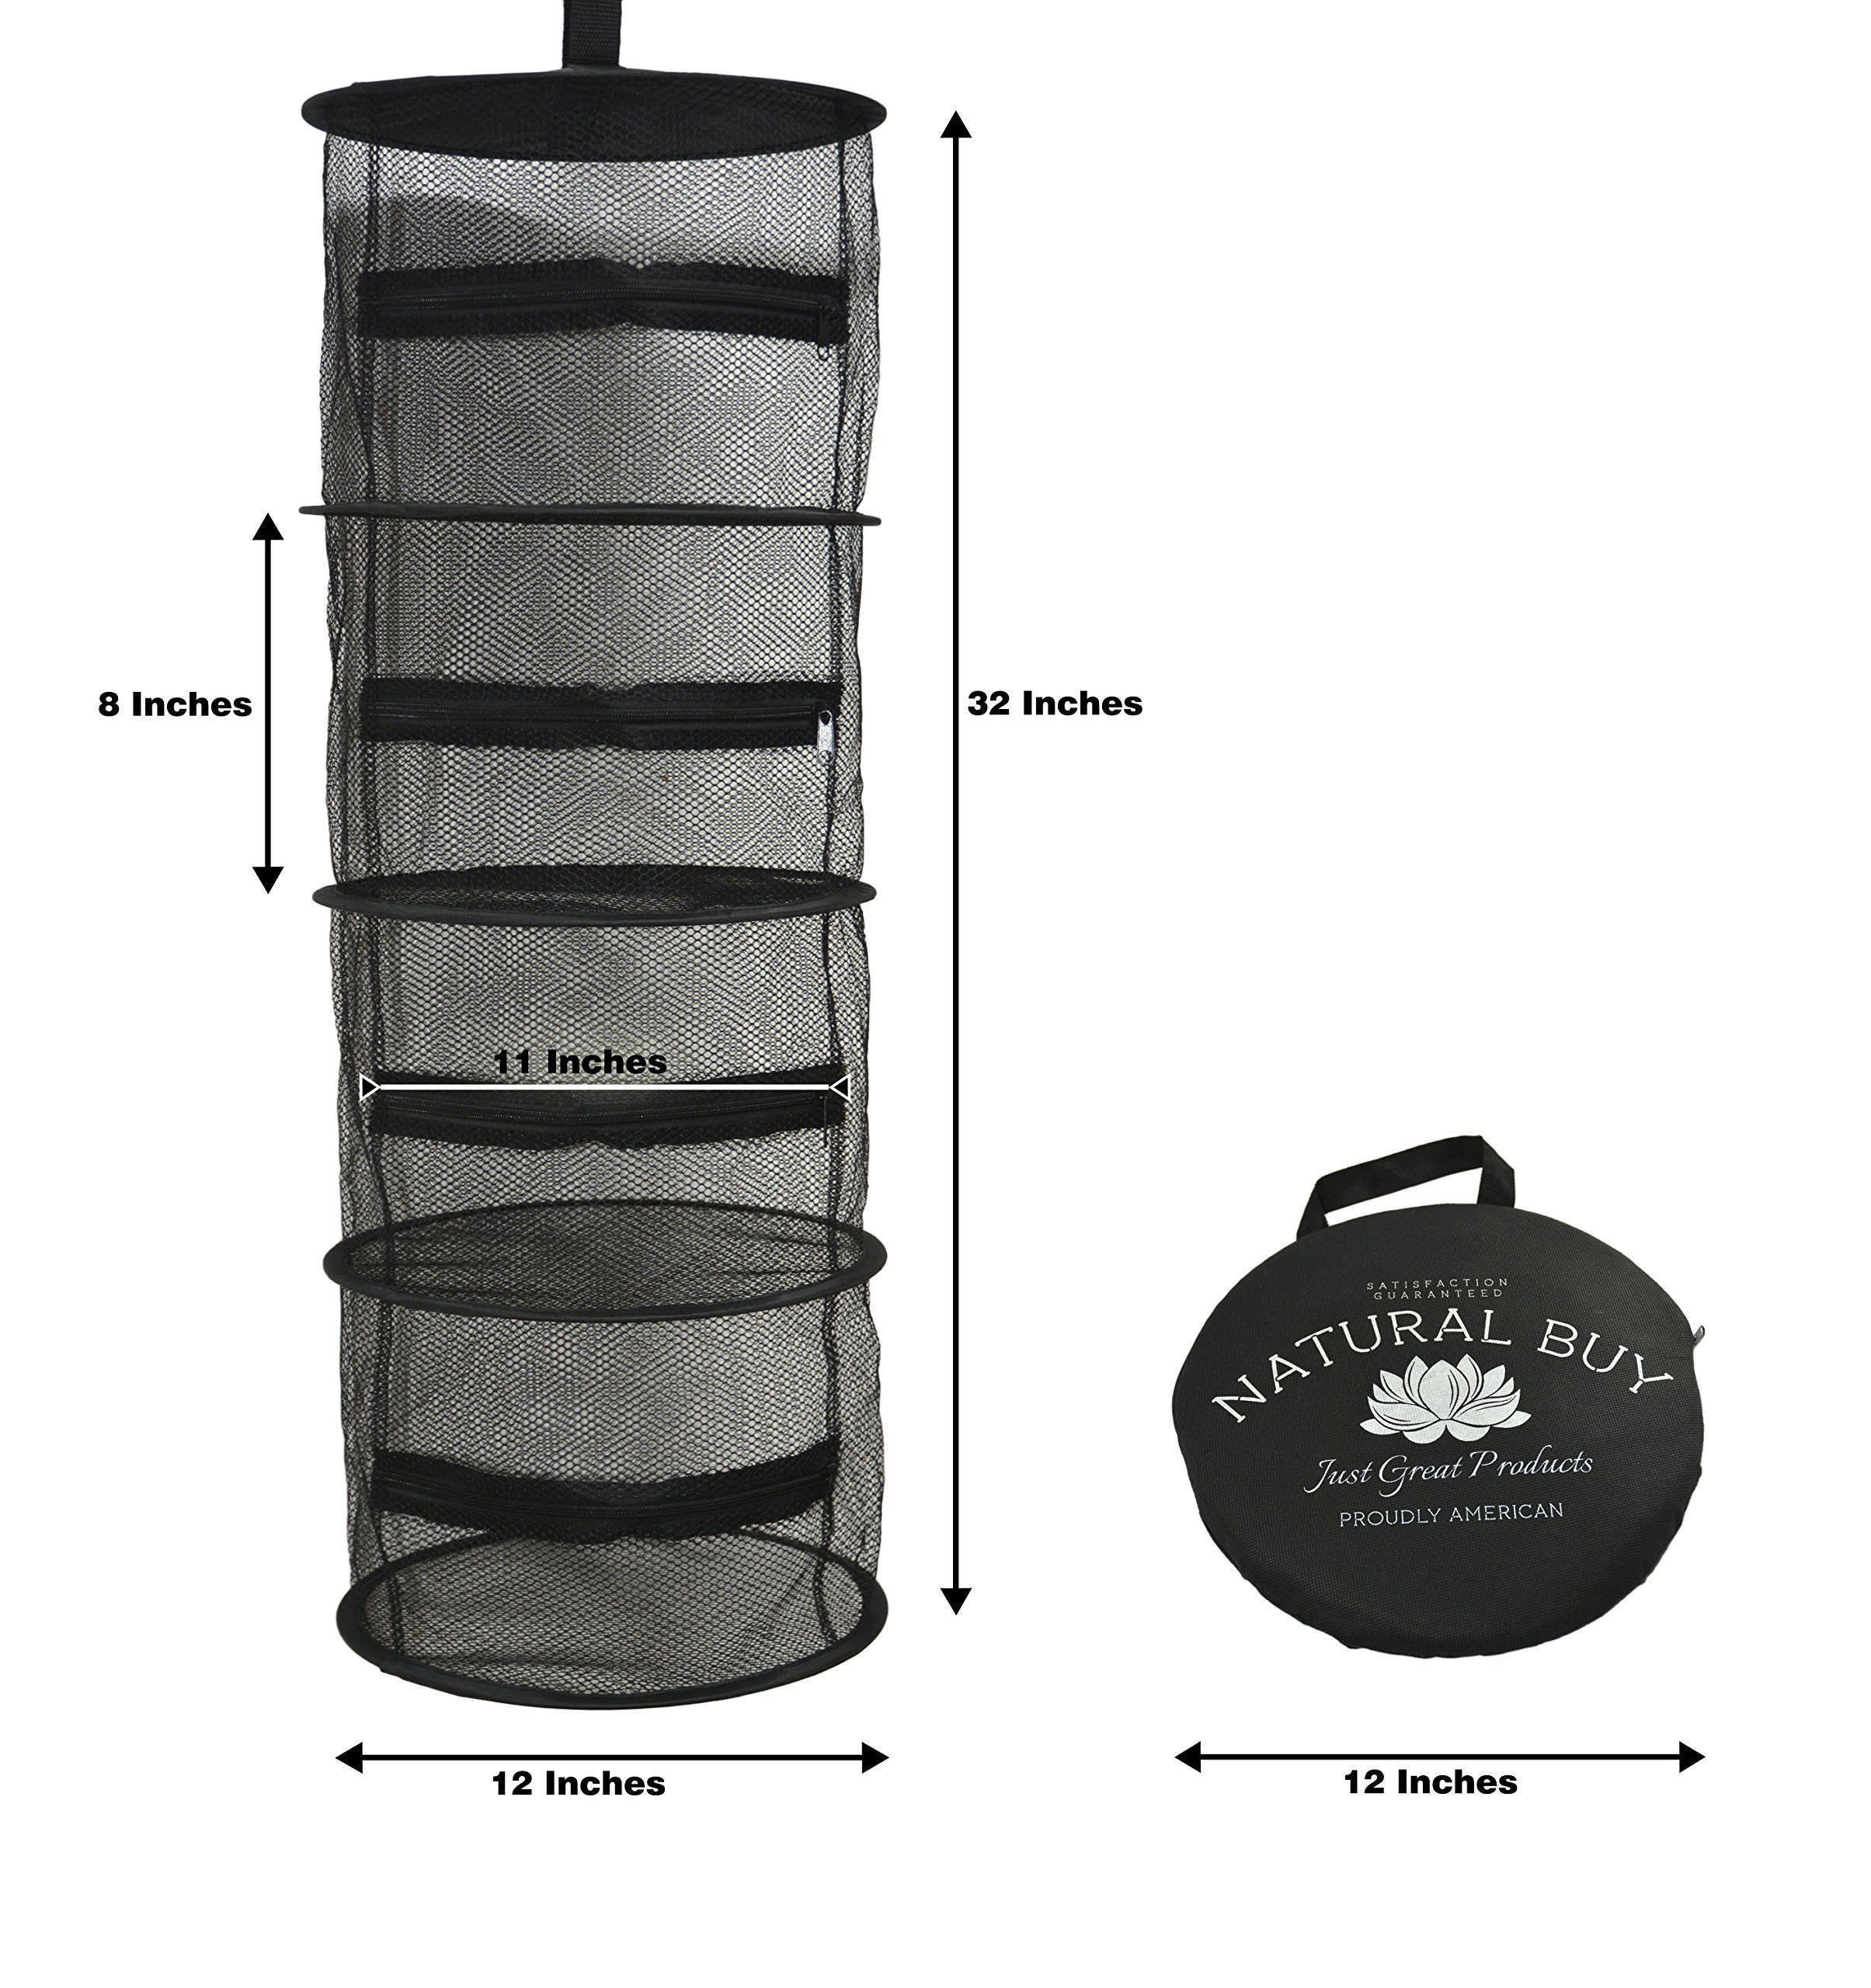 Compact 12 Inch Diameter 4 Layer Mini Hanging Herb Drying Rack - Black Dry Net Mesh Screen with Zippers for Indoor and Outdoor Use - Ideal for Closets and Grow Tents by Natural Buy